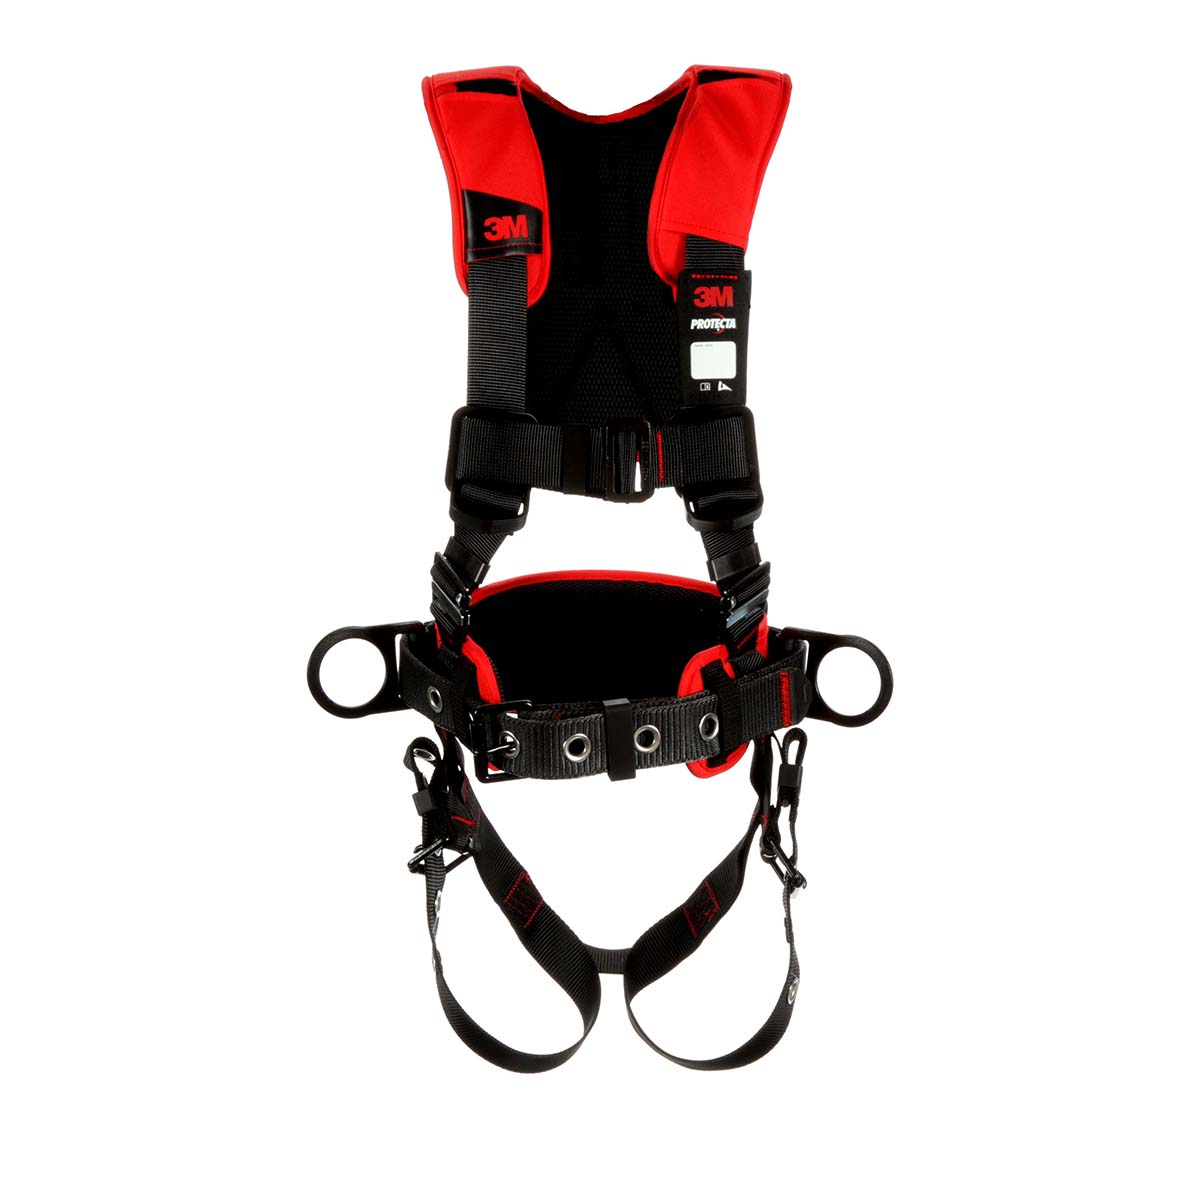 3M Protecta Comfort Construction Style Positioning Harness 1161205